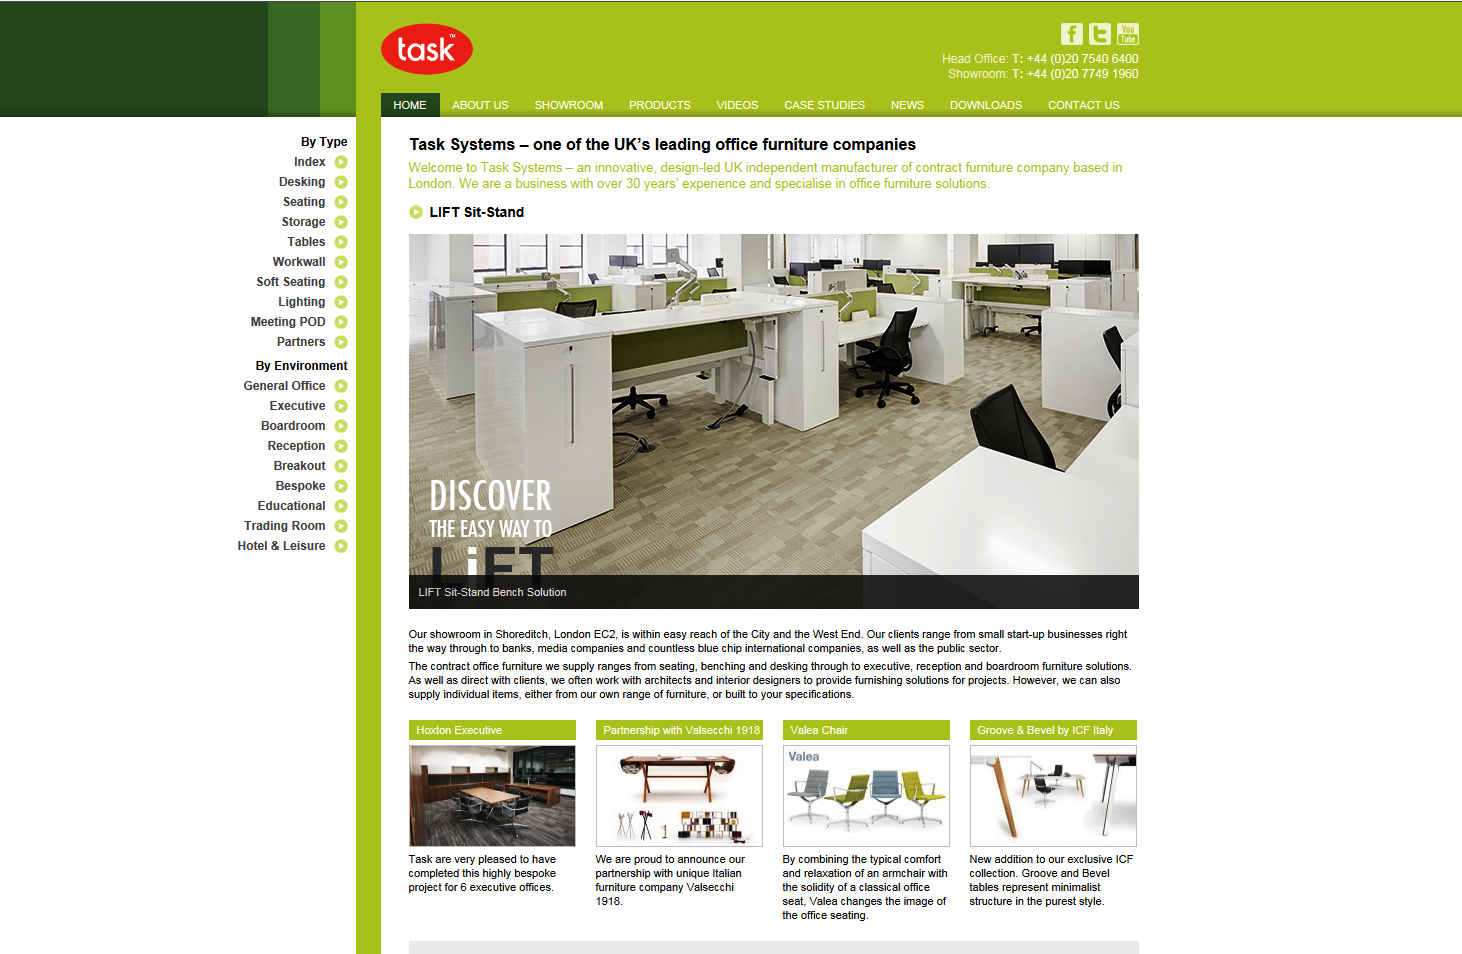 Task Systems web page